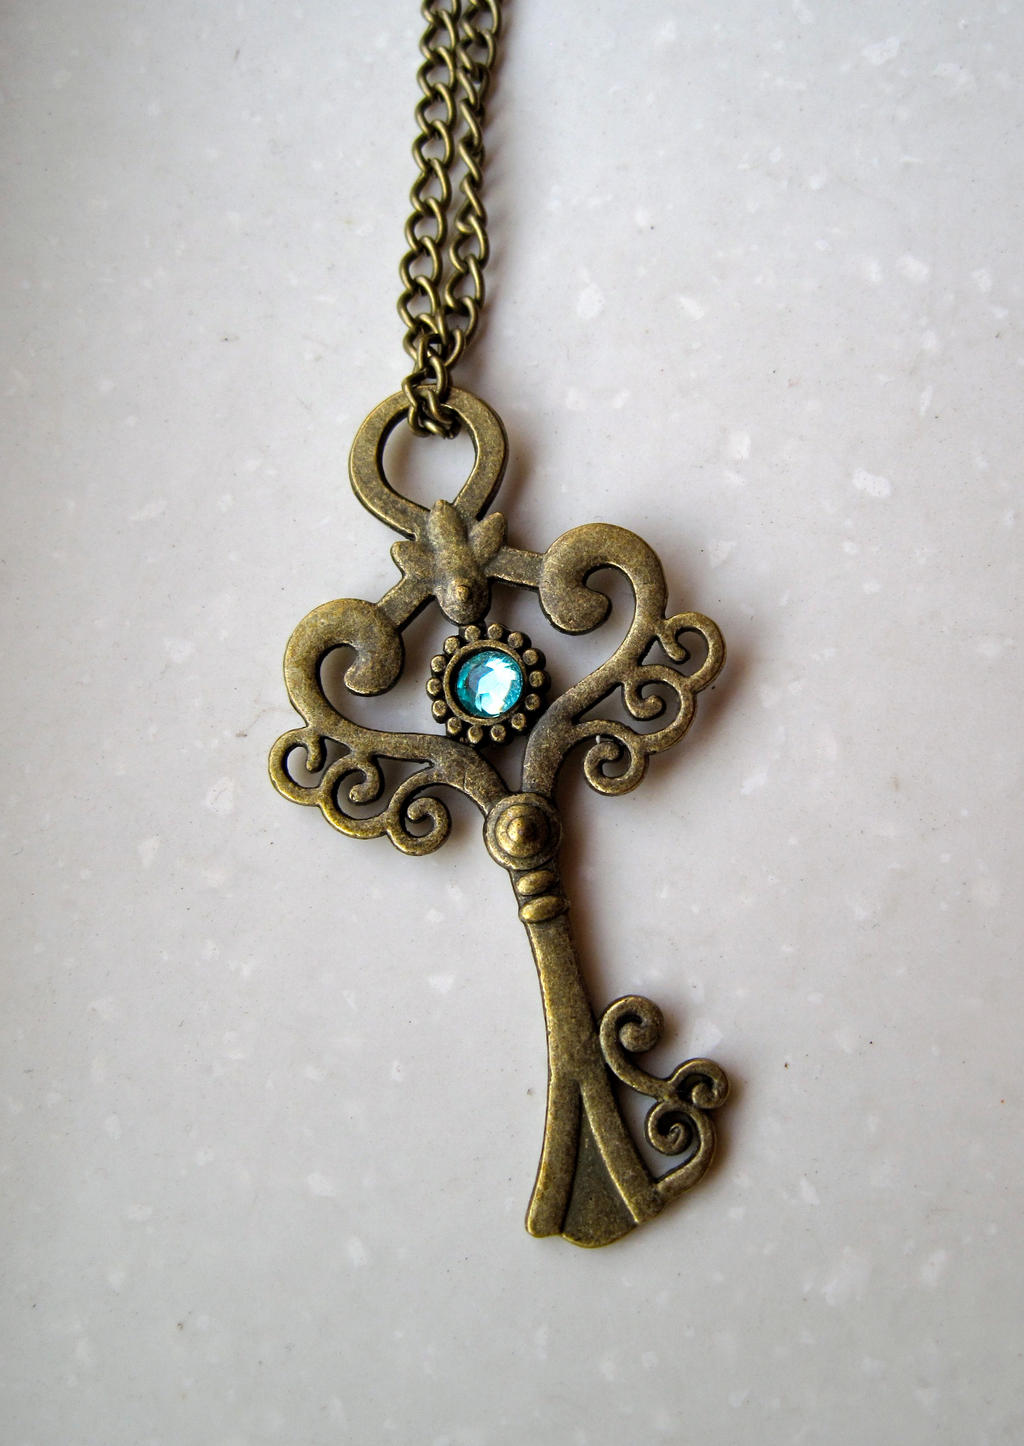 antique key necklace by nobody426 on deviantart